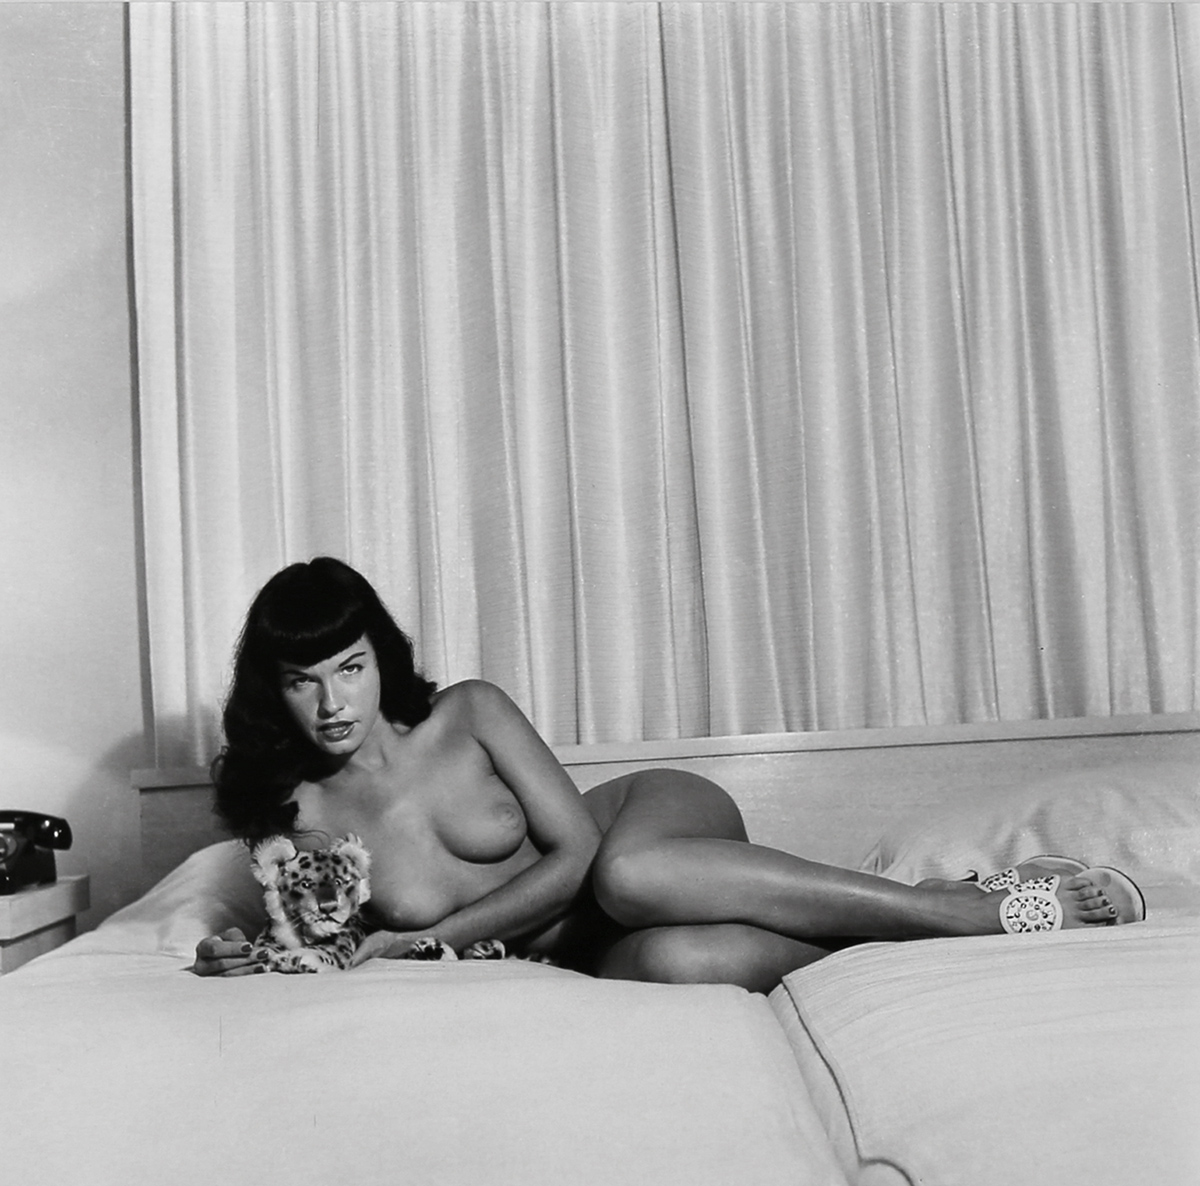 Speaking, bettie page nude outdoors really